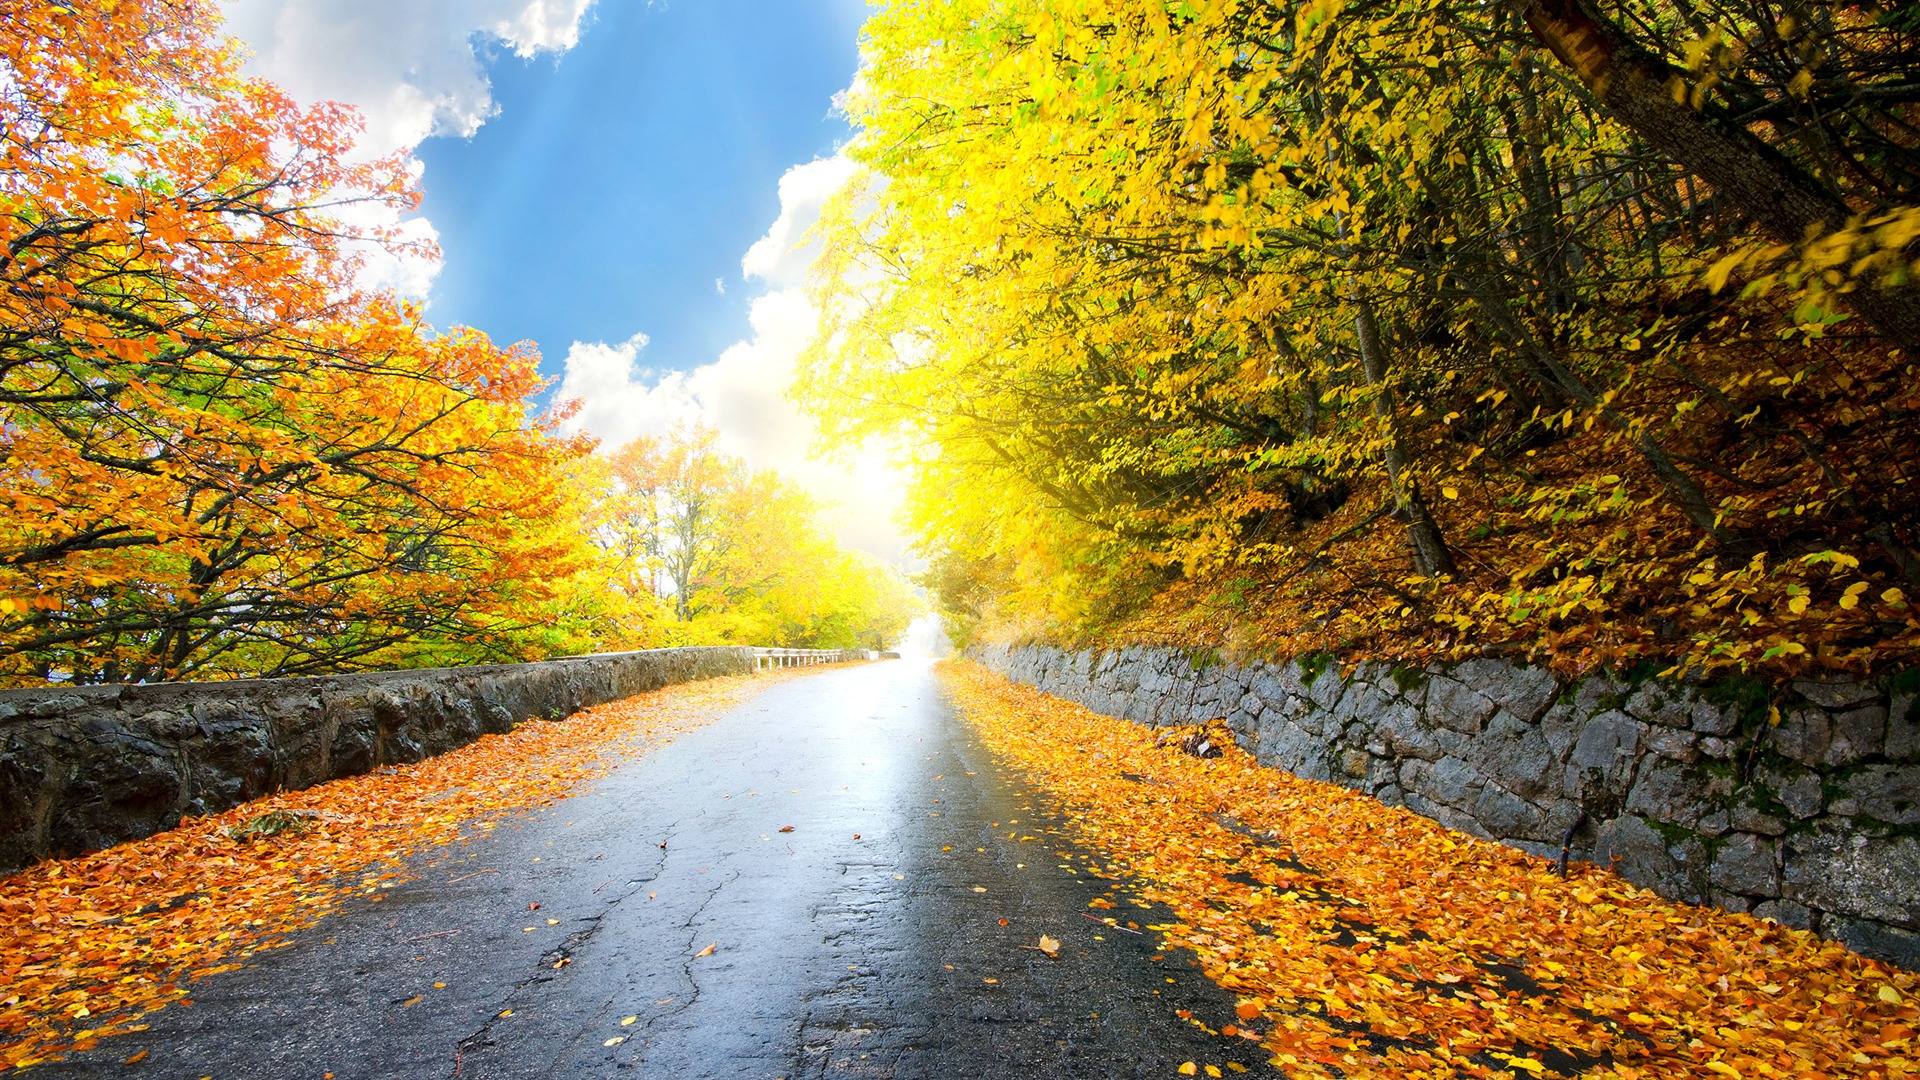 Autumn Roads Gold Yellow Foliage Scenery Wallpaper 1080p